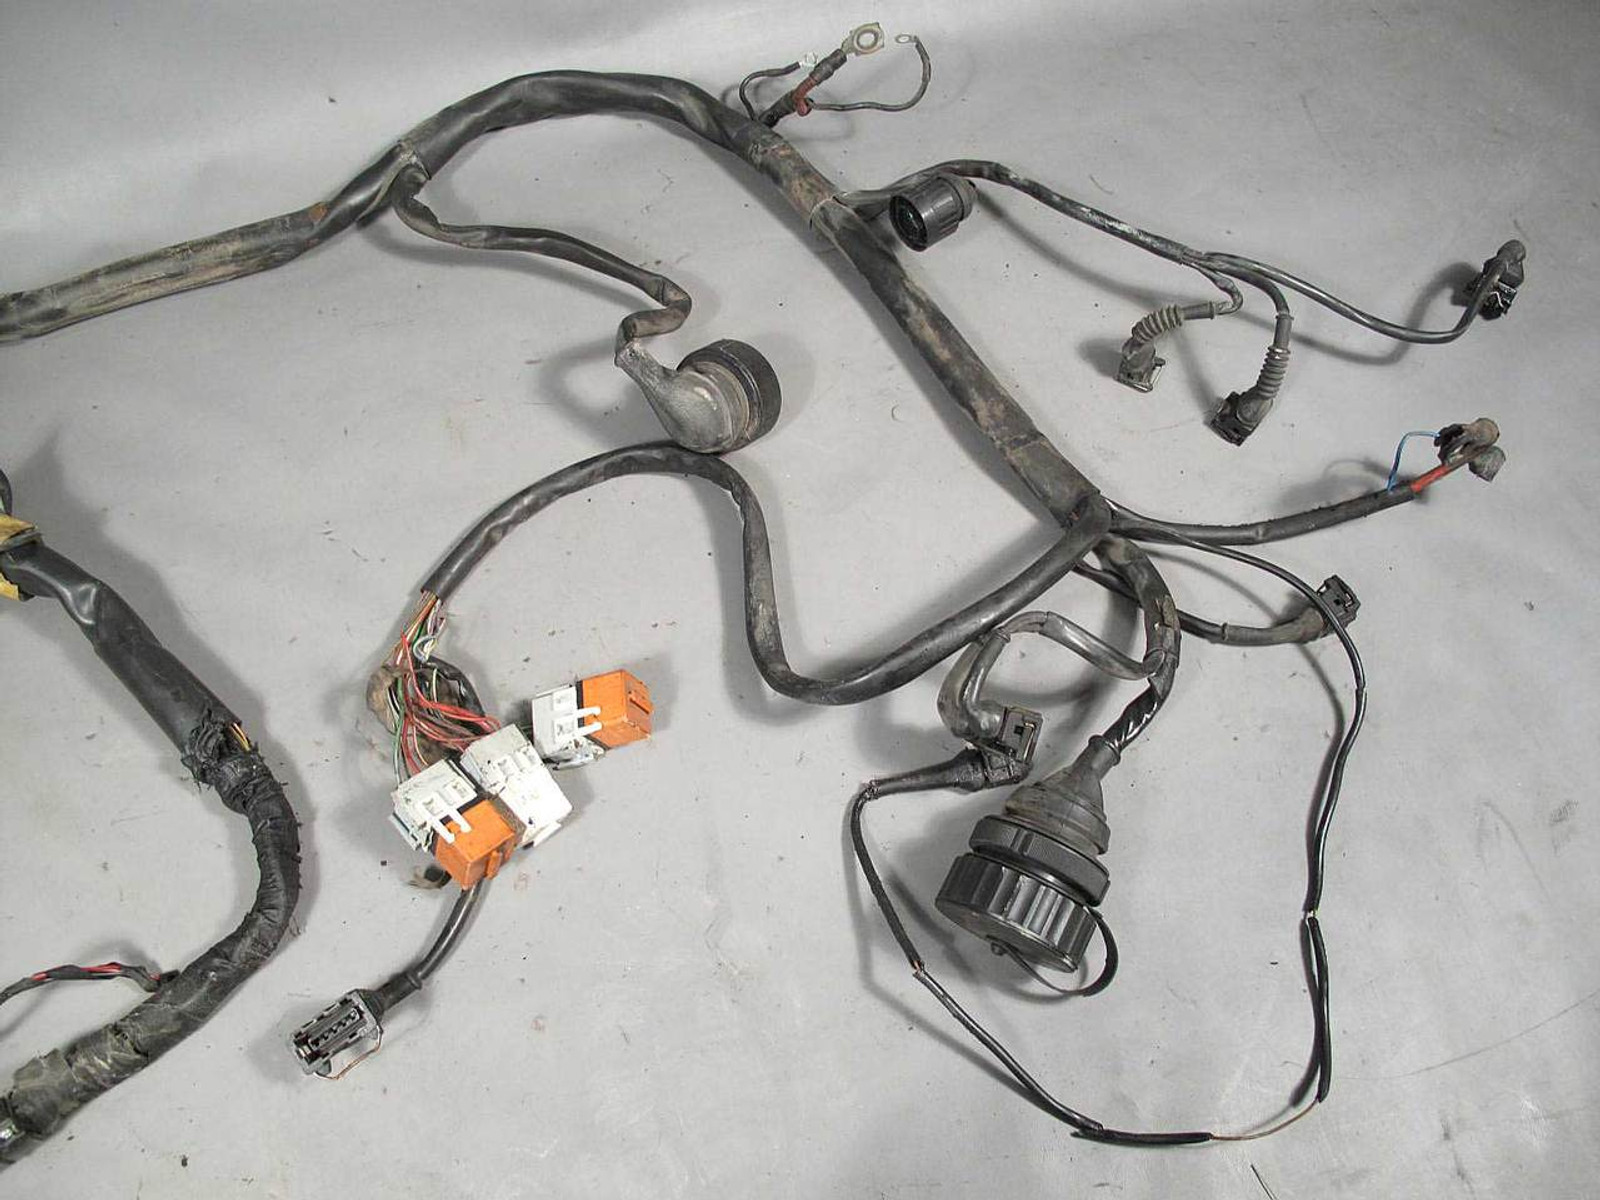 BMW E30 325i M20 2.5L Engine Wiring Harness Complete Auto Trans 1989 Bmw E Wiring Harness on morris minor wiring harness, bmw e90 wiring harness, lexus wiring harness, mercedes wiring harness, bmw x5 wiring harness, bmw e39 wiring harness, audi a4 wiring harness, subaru wiring harness, engine wiring harness, vw wiring harness, nissan 350z wiring harness, bmw 2002 wiring harness, fiat 500 wiring harness, bmw 328 wiring harness, bmw e46 wiring harness,